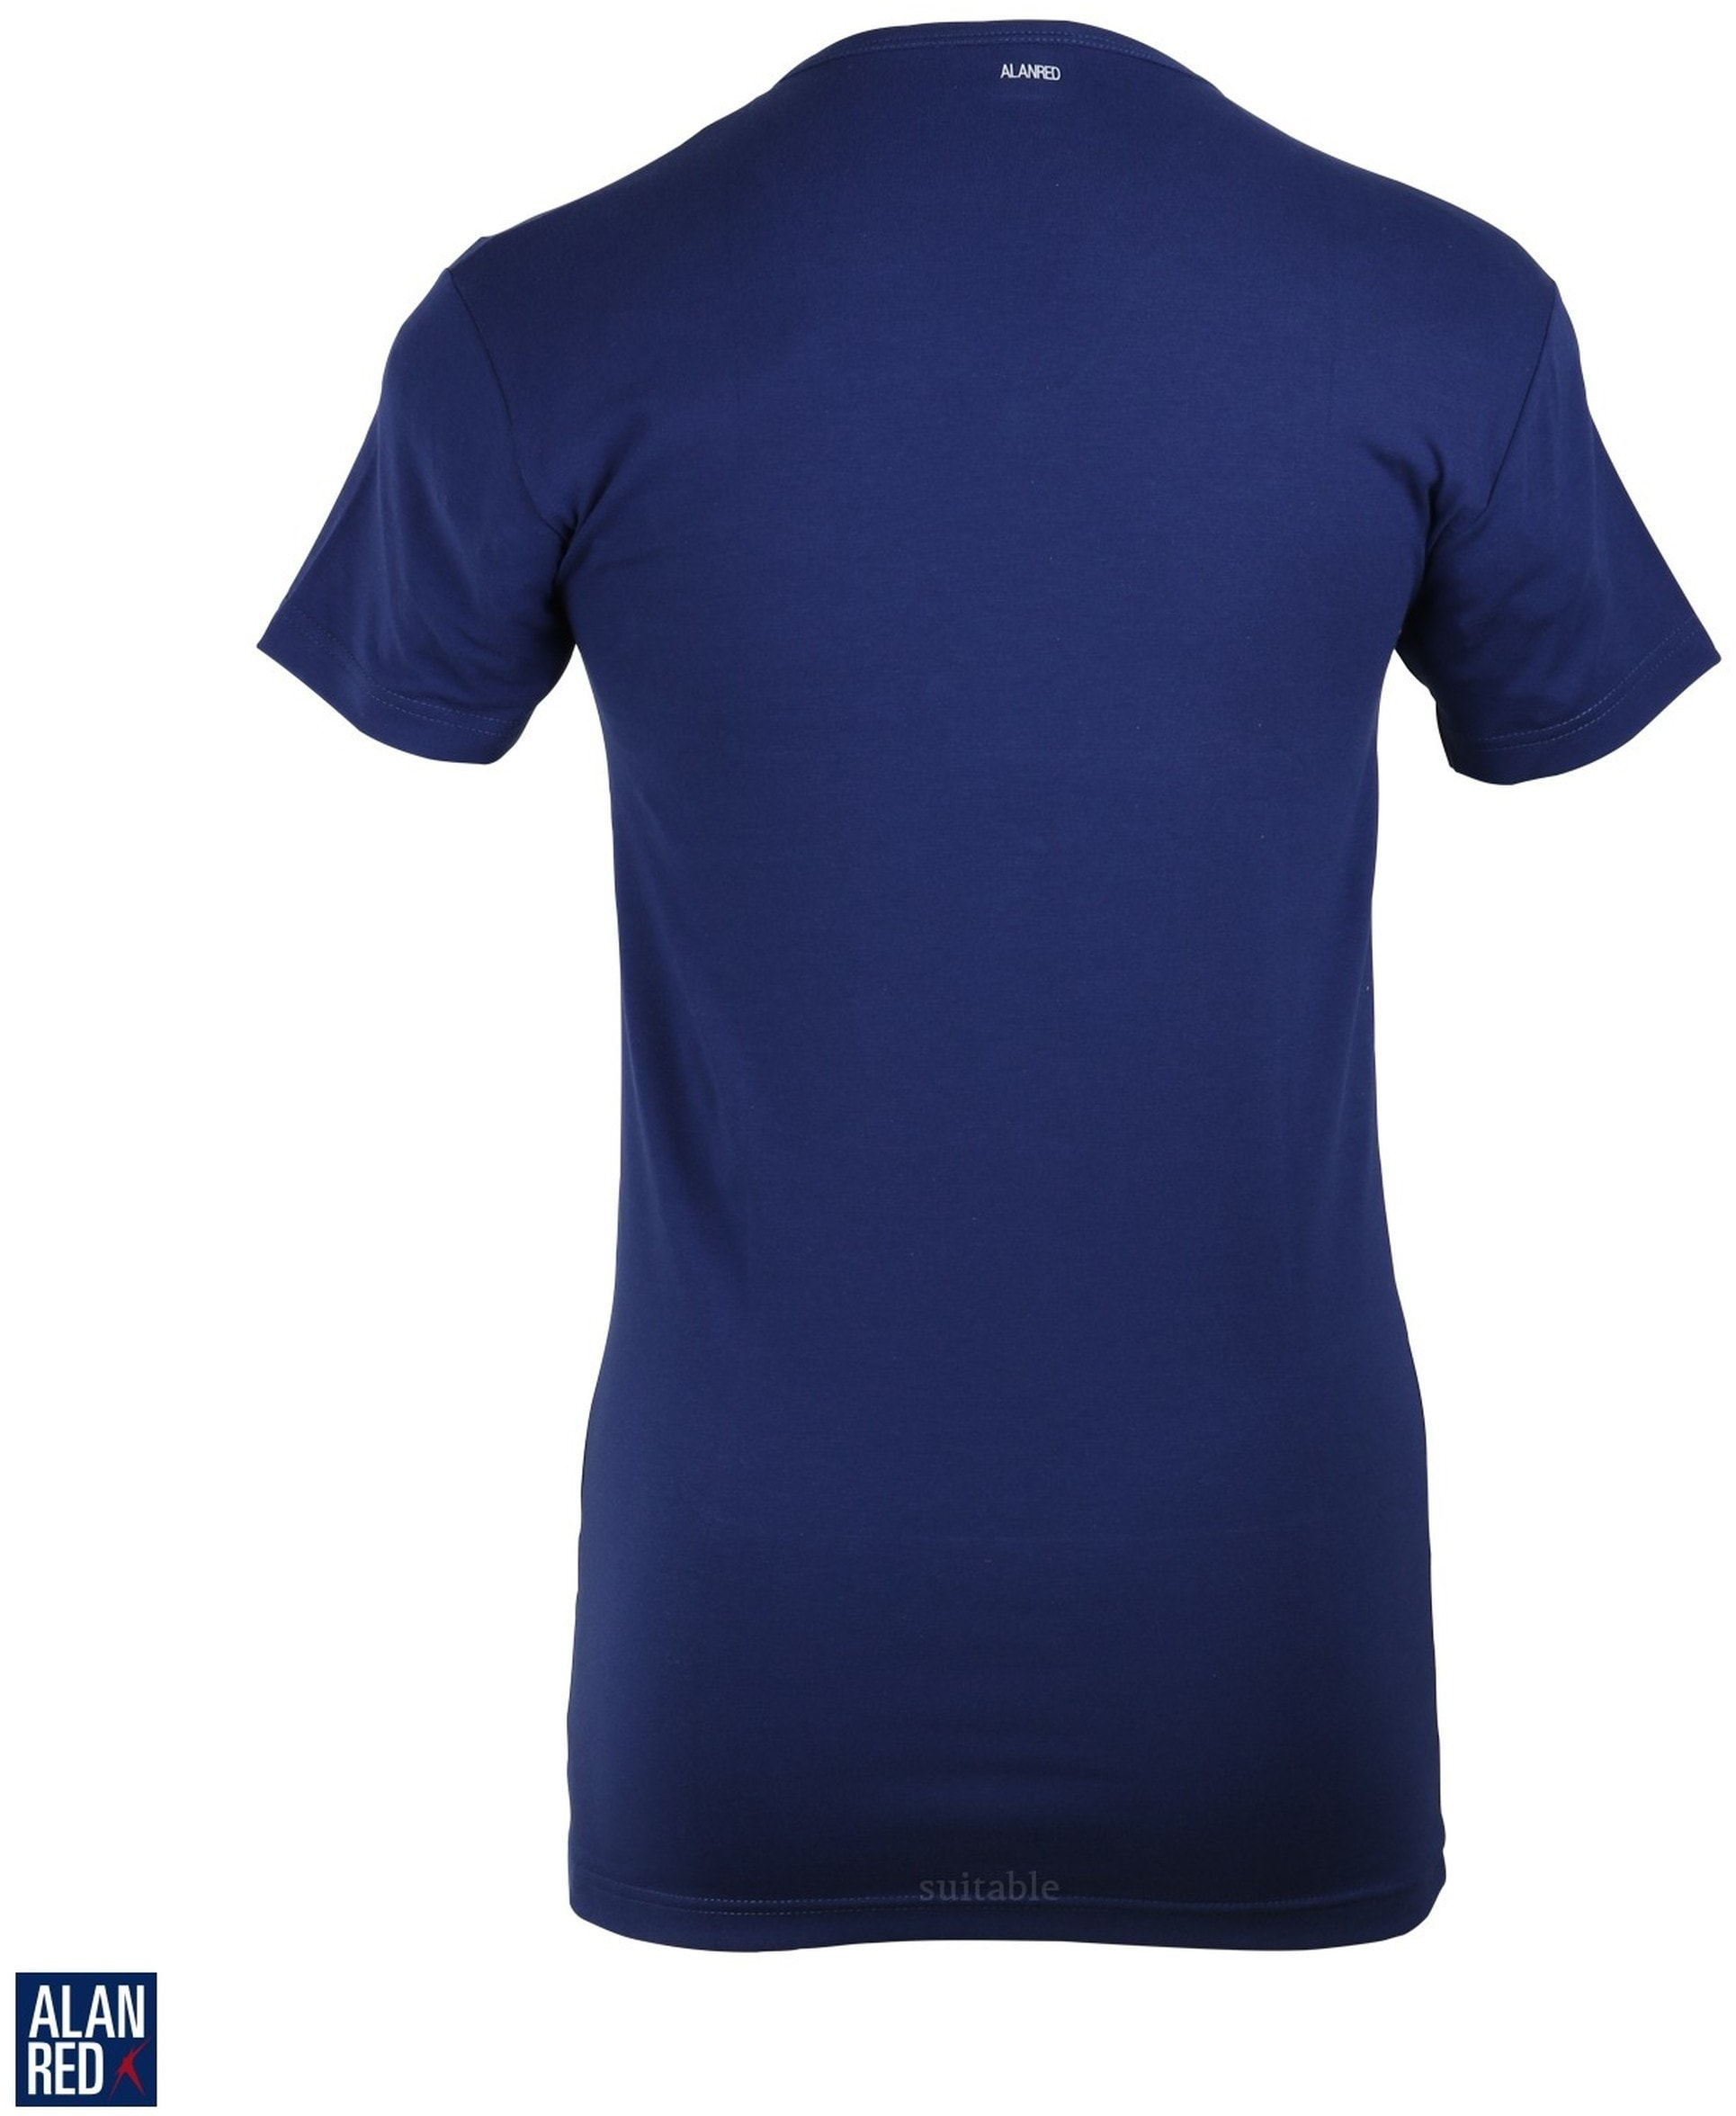 Alan Red Oklahoma T-shirt Stretch Ultramarine (1pack) foto 2